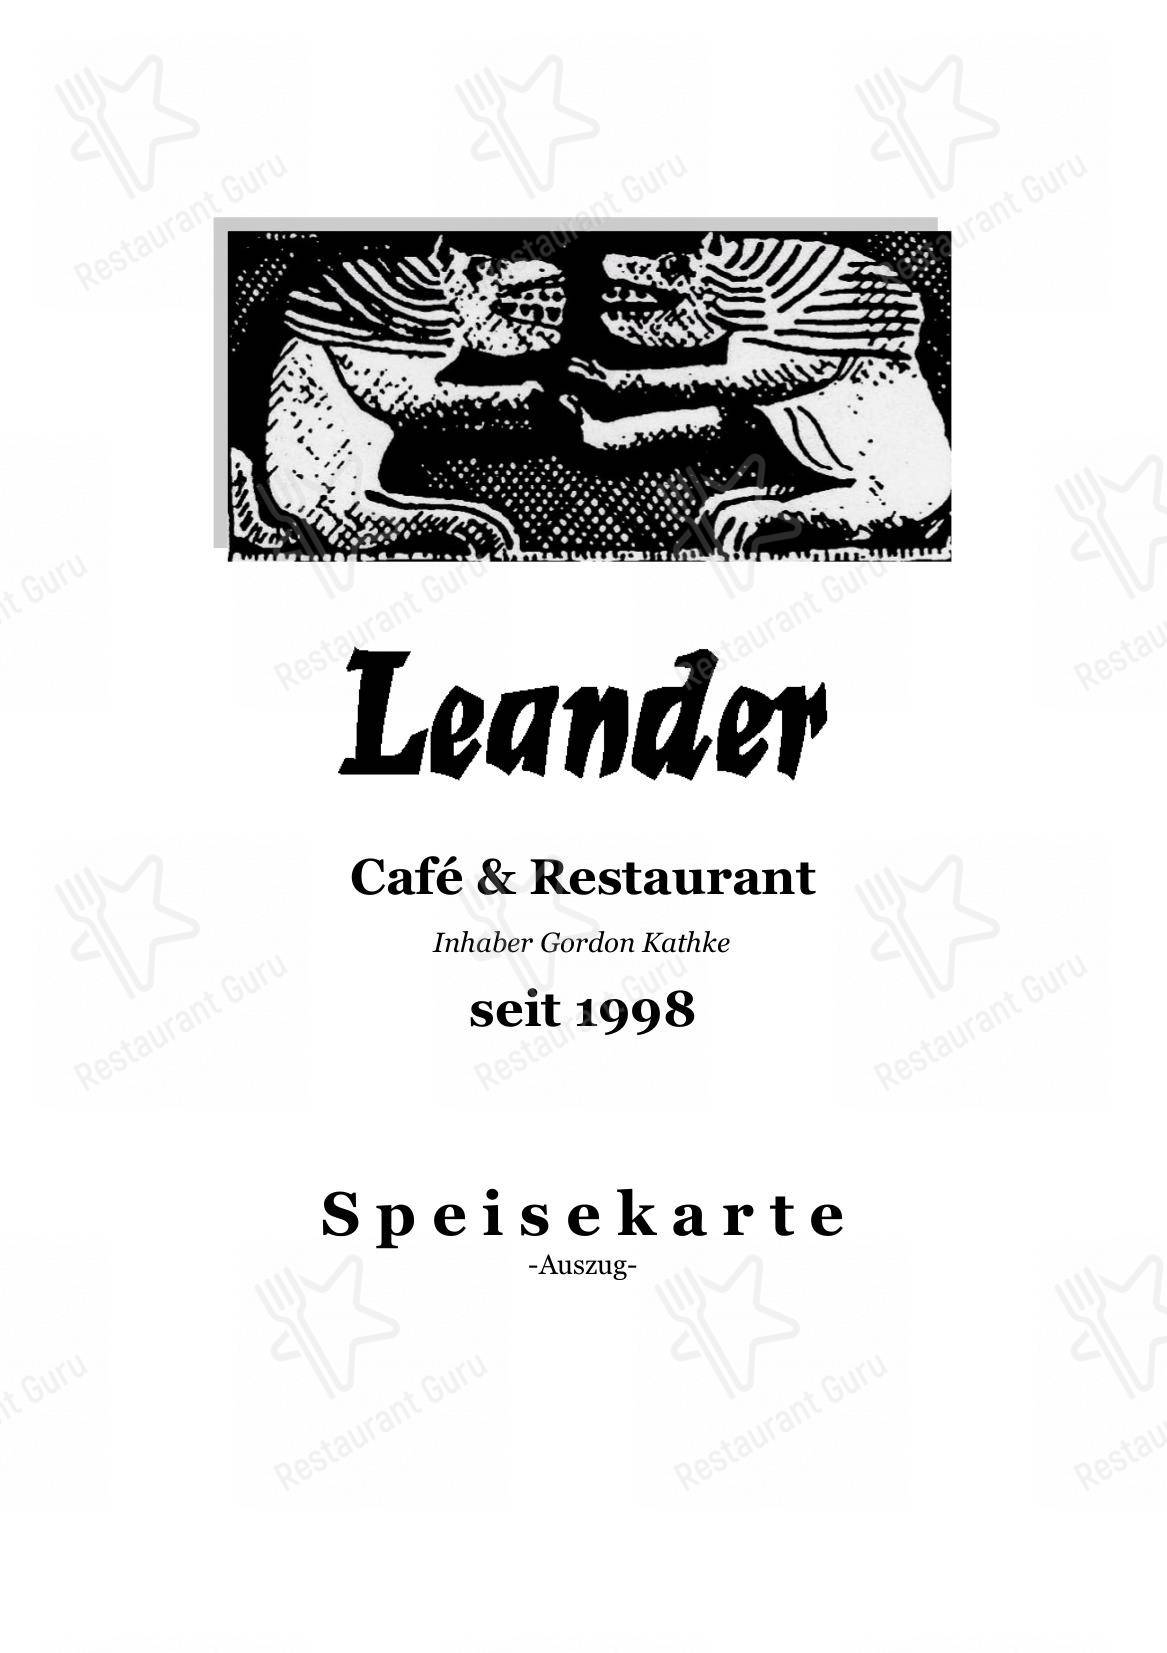 Check out the menu for Leander